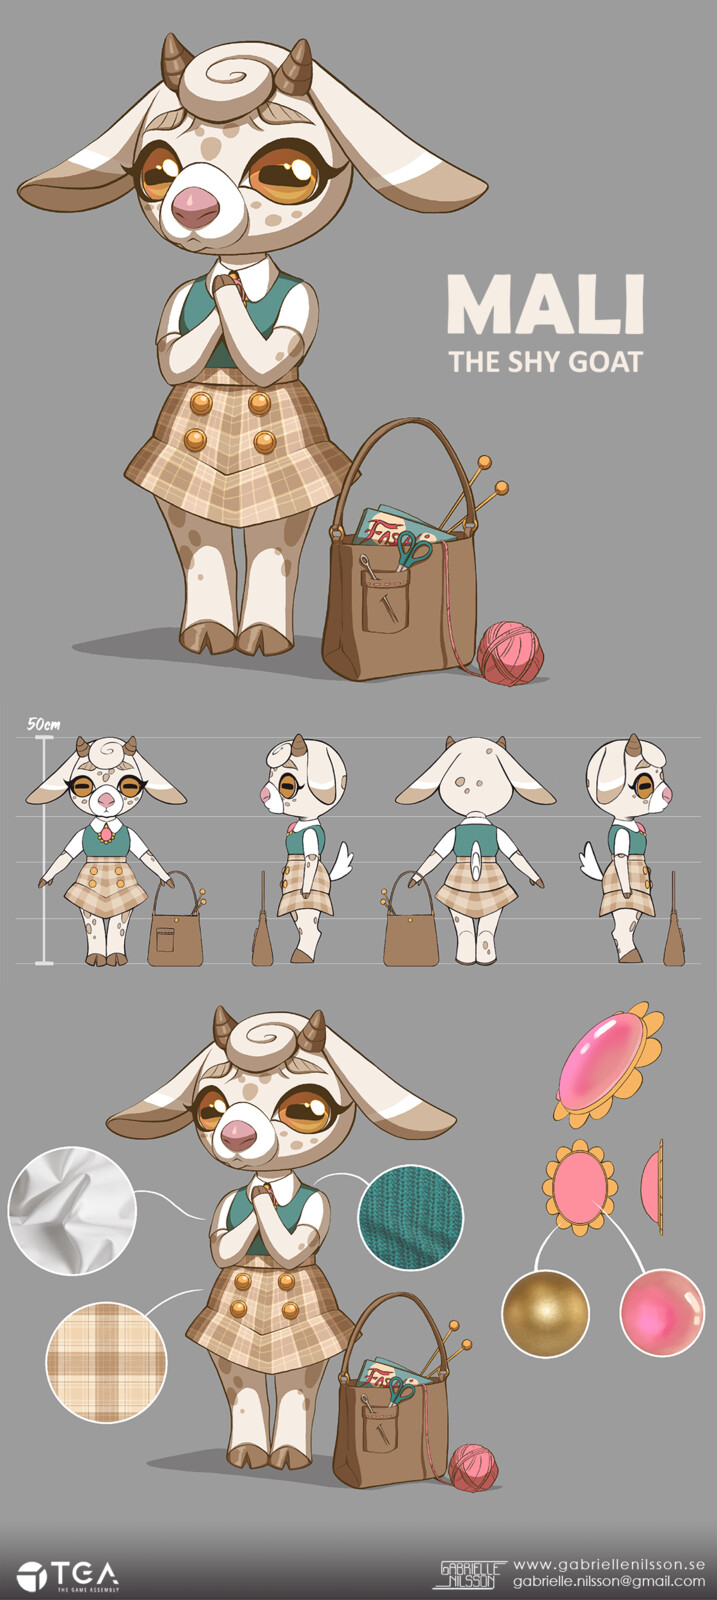 Mali the shy goat! Character concept and breakdown.